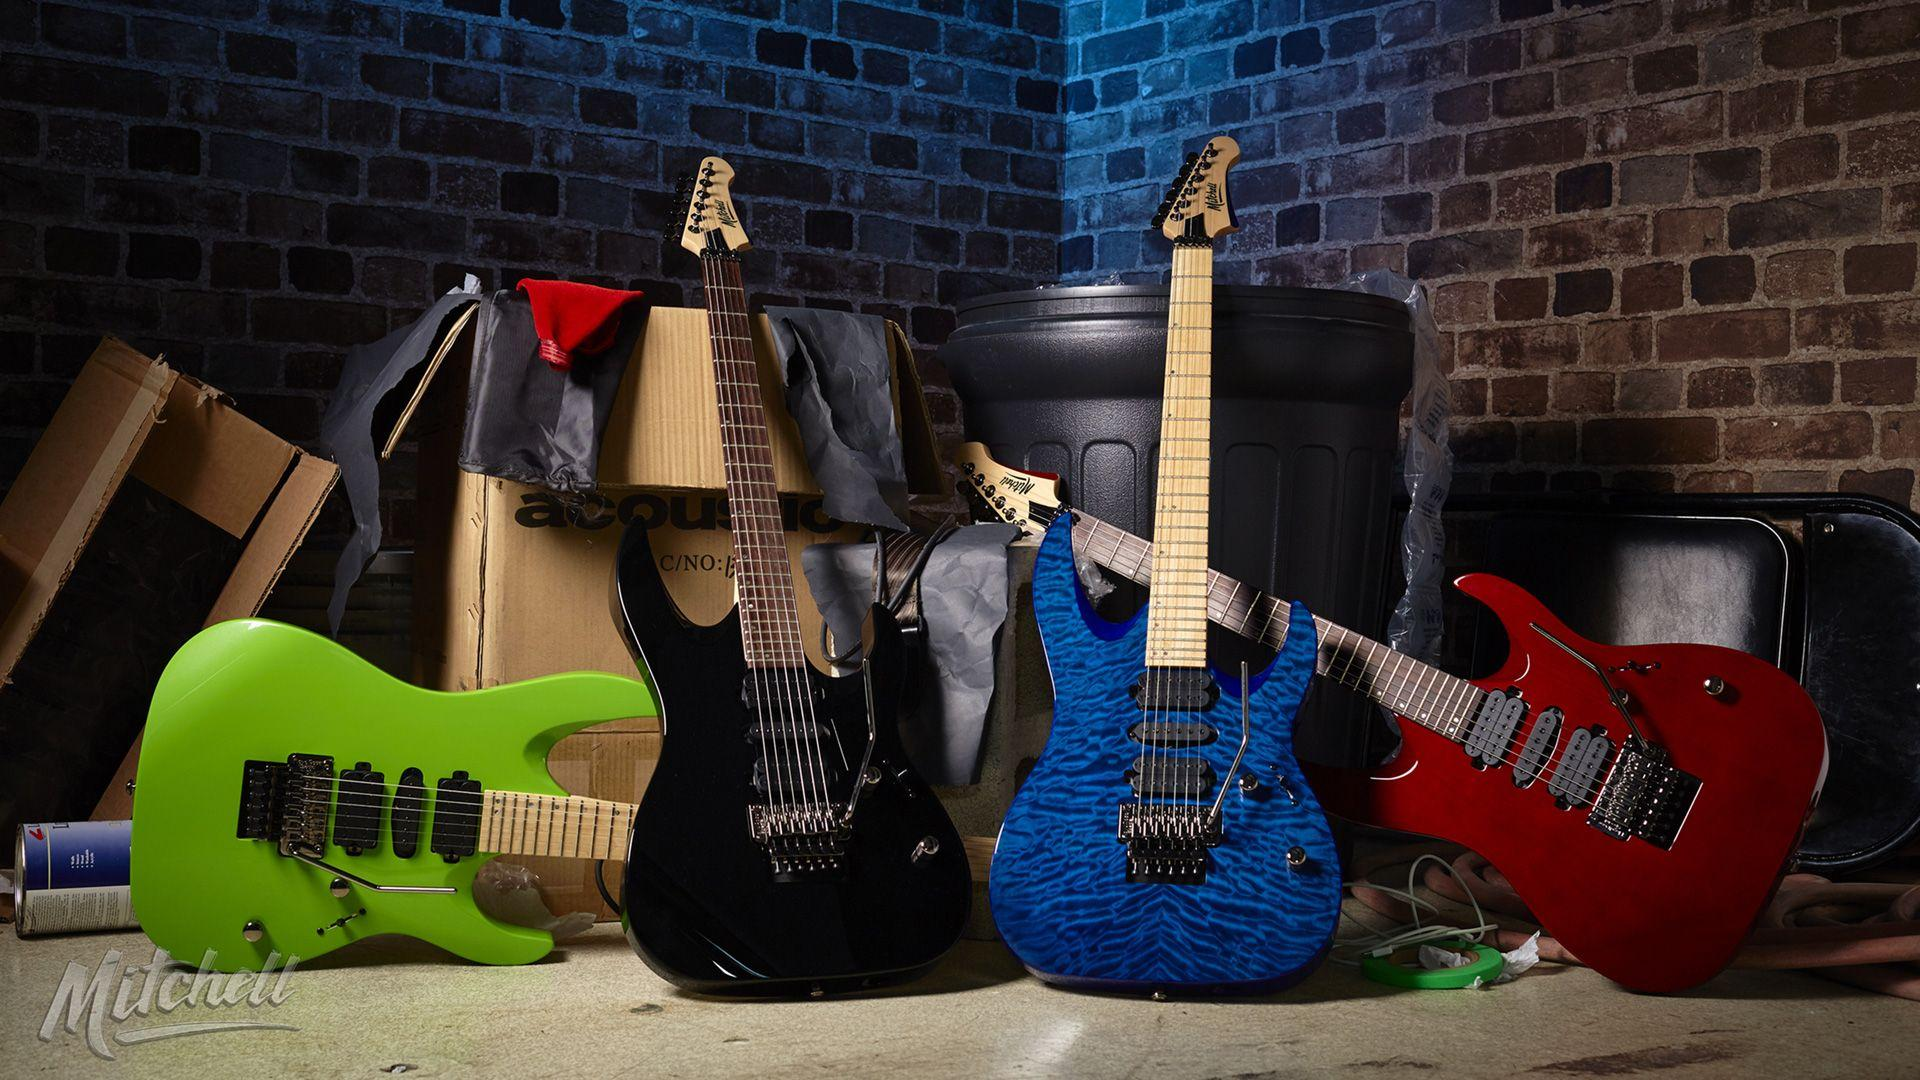 Mitchell Guitars Wallpapers | Mitchell Electric Guitars Free Downloads